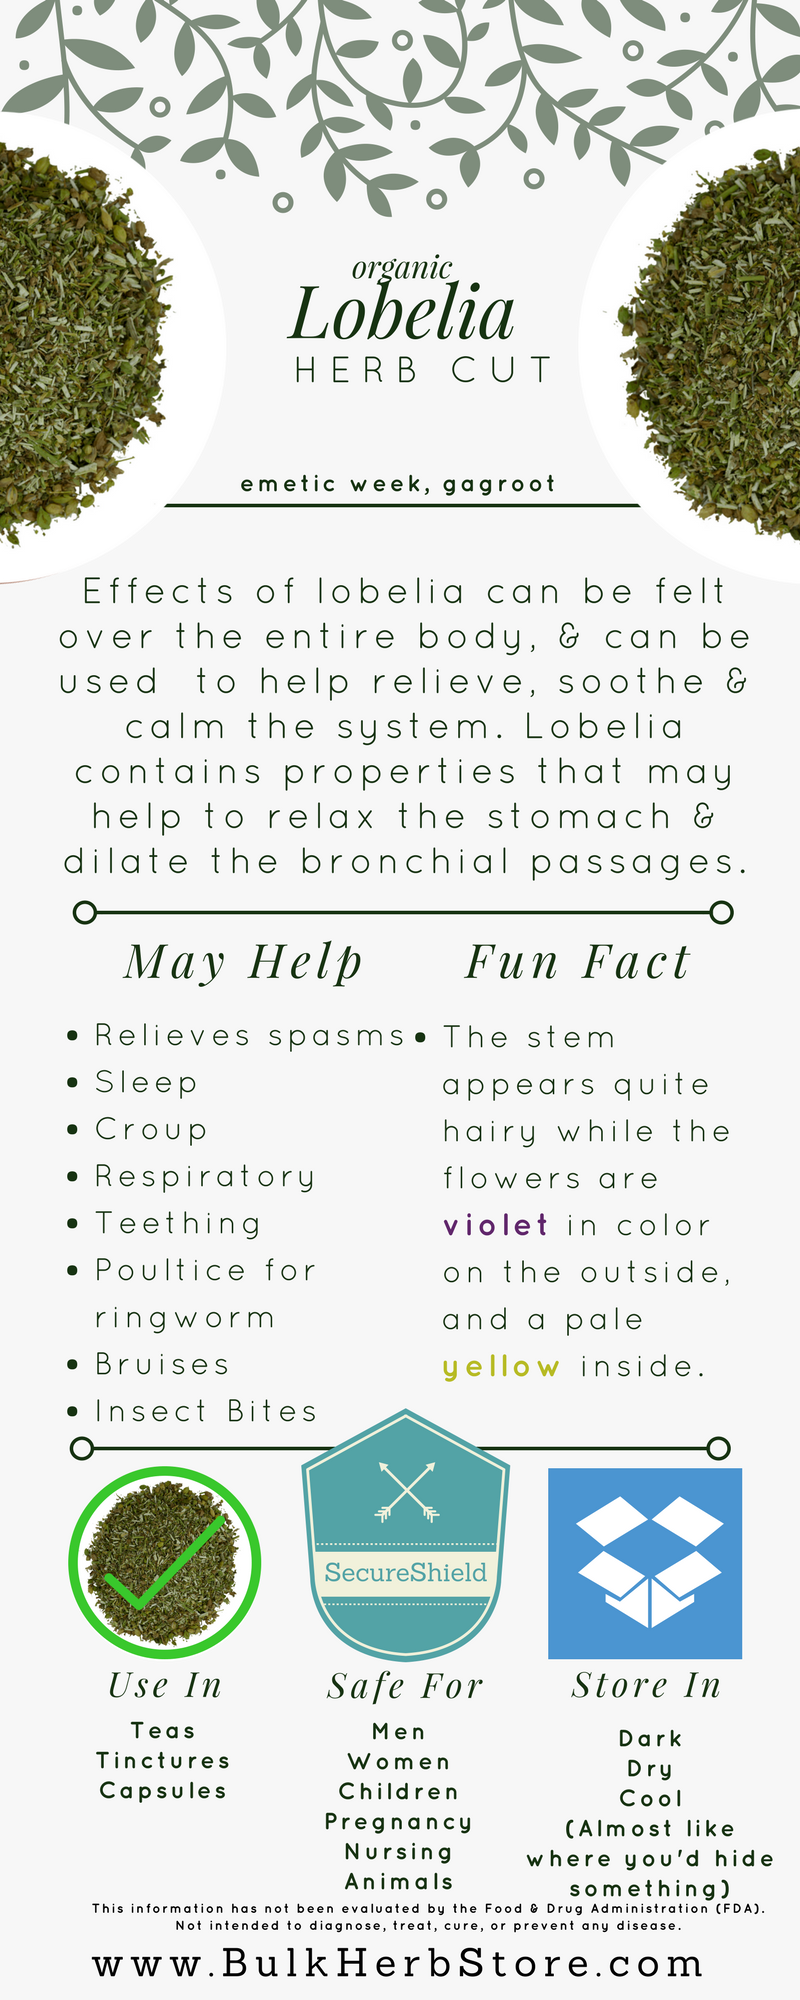 Lobelia Is One Of The Most Relaxing Herbs Known And Is Commonly